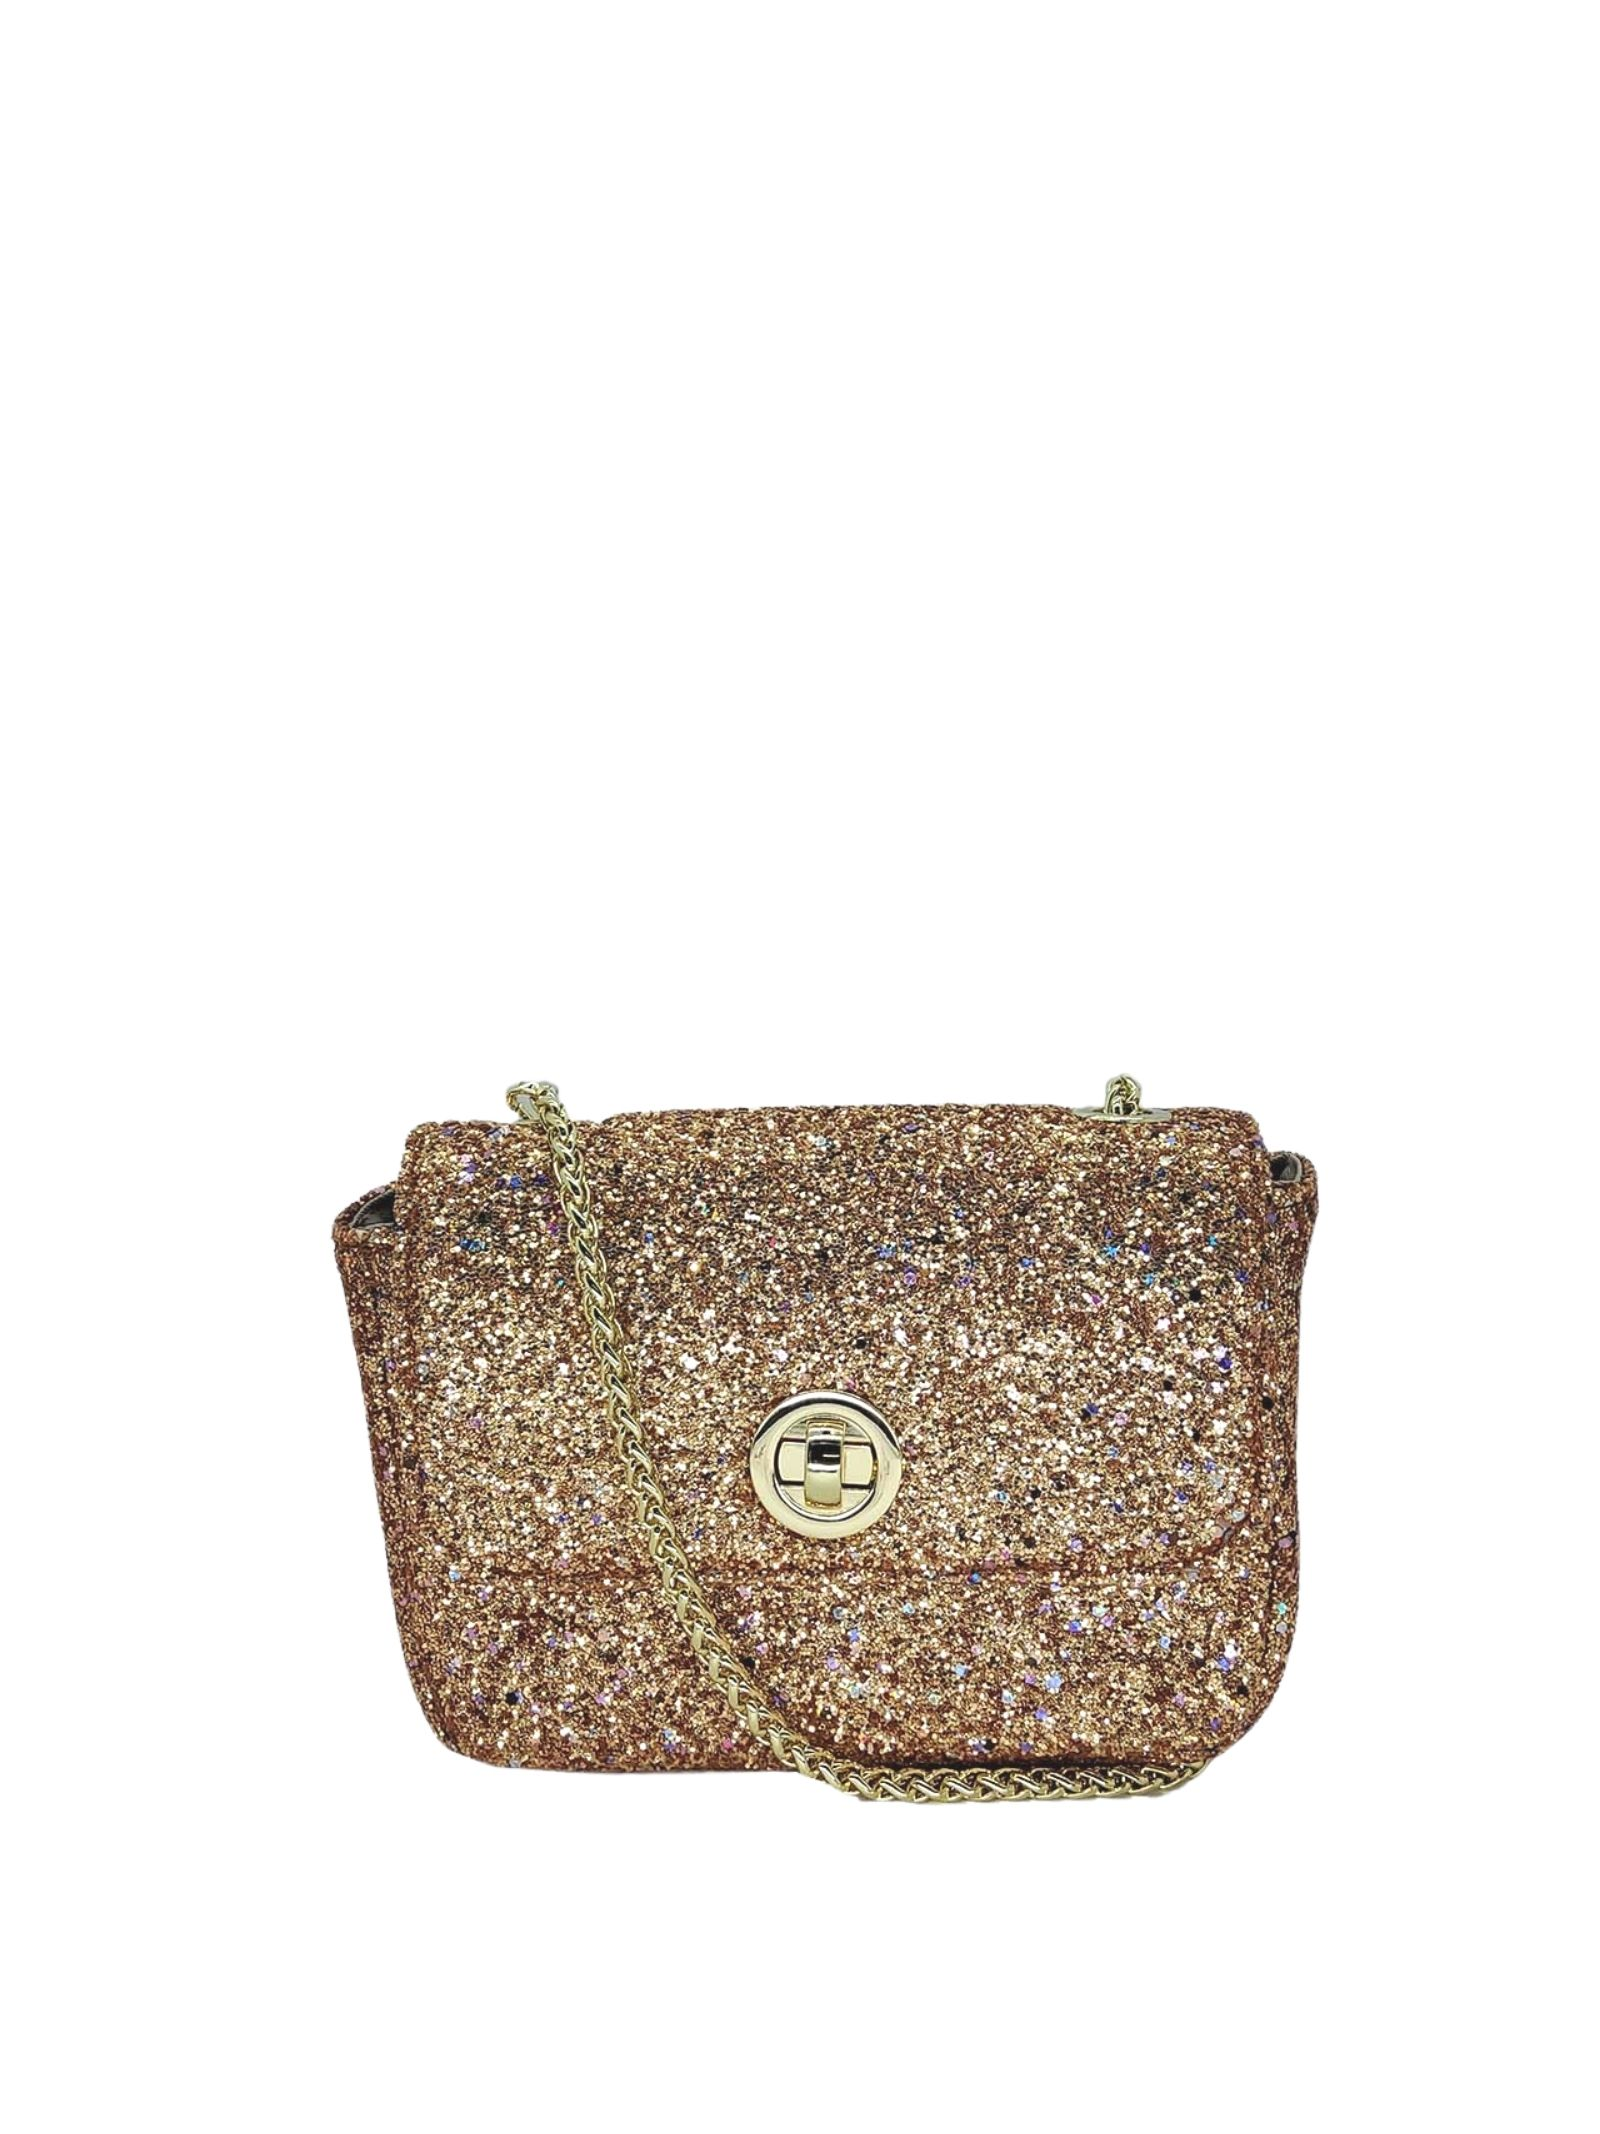 Women's Bags Clutch Bag in Gold Glitter Fabric with Gold Chain Kassiopea   Bags and backpacks   URIEL602